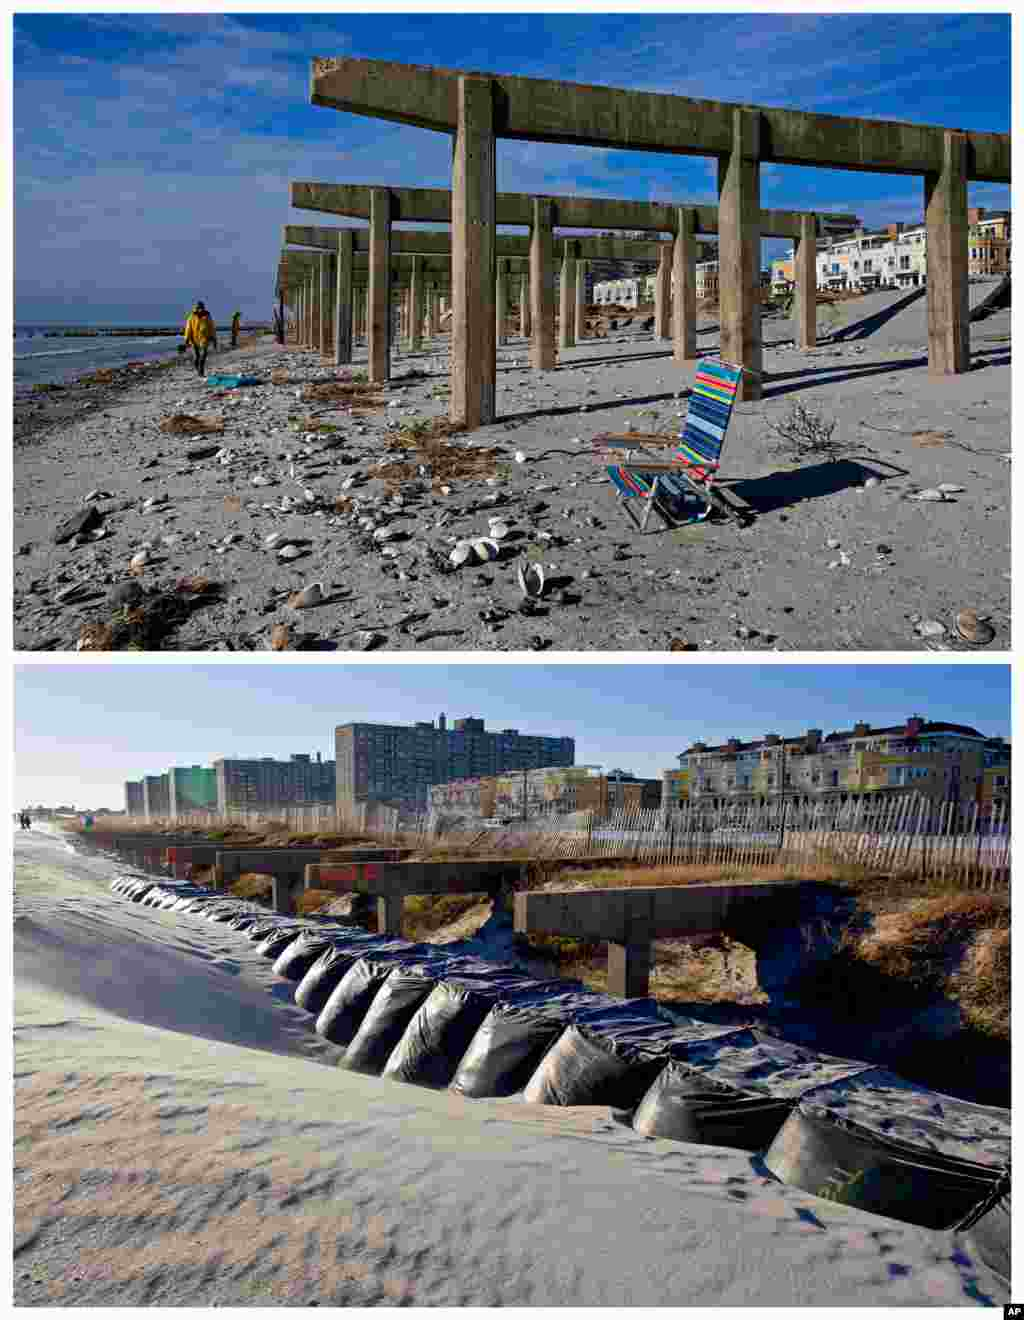 This combination photos shows the beach under what is left of the boardwalk in the wake of Superstorm Sandy in the borough of Queens, New York on Nov. 5, 2012 and Oct. 21, 2013.